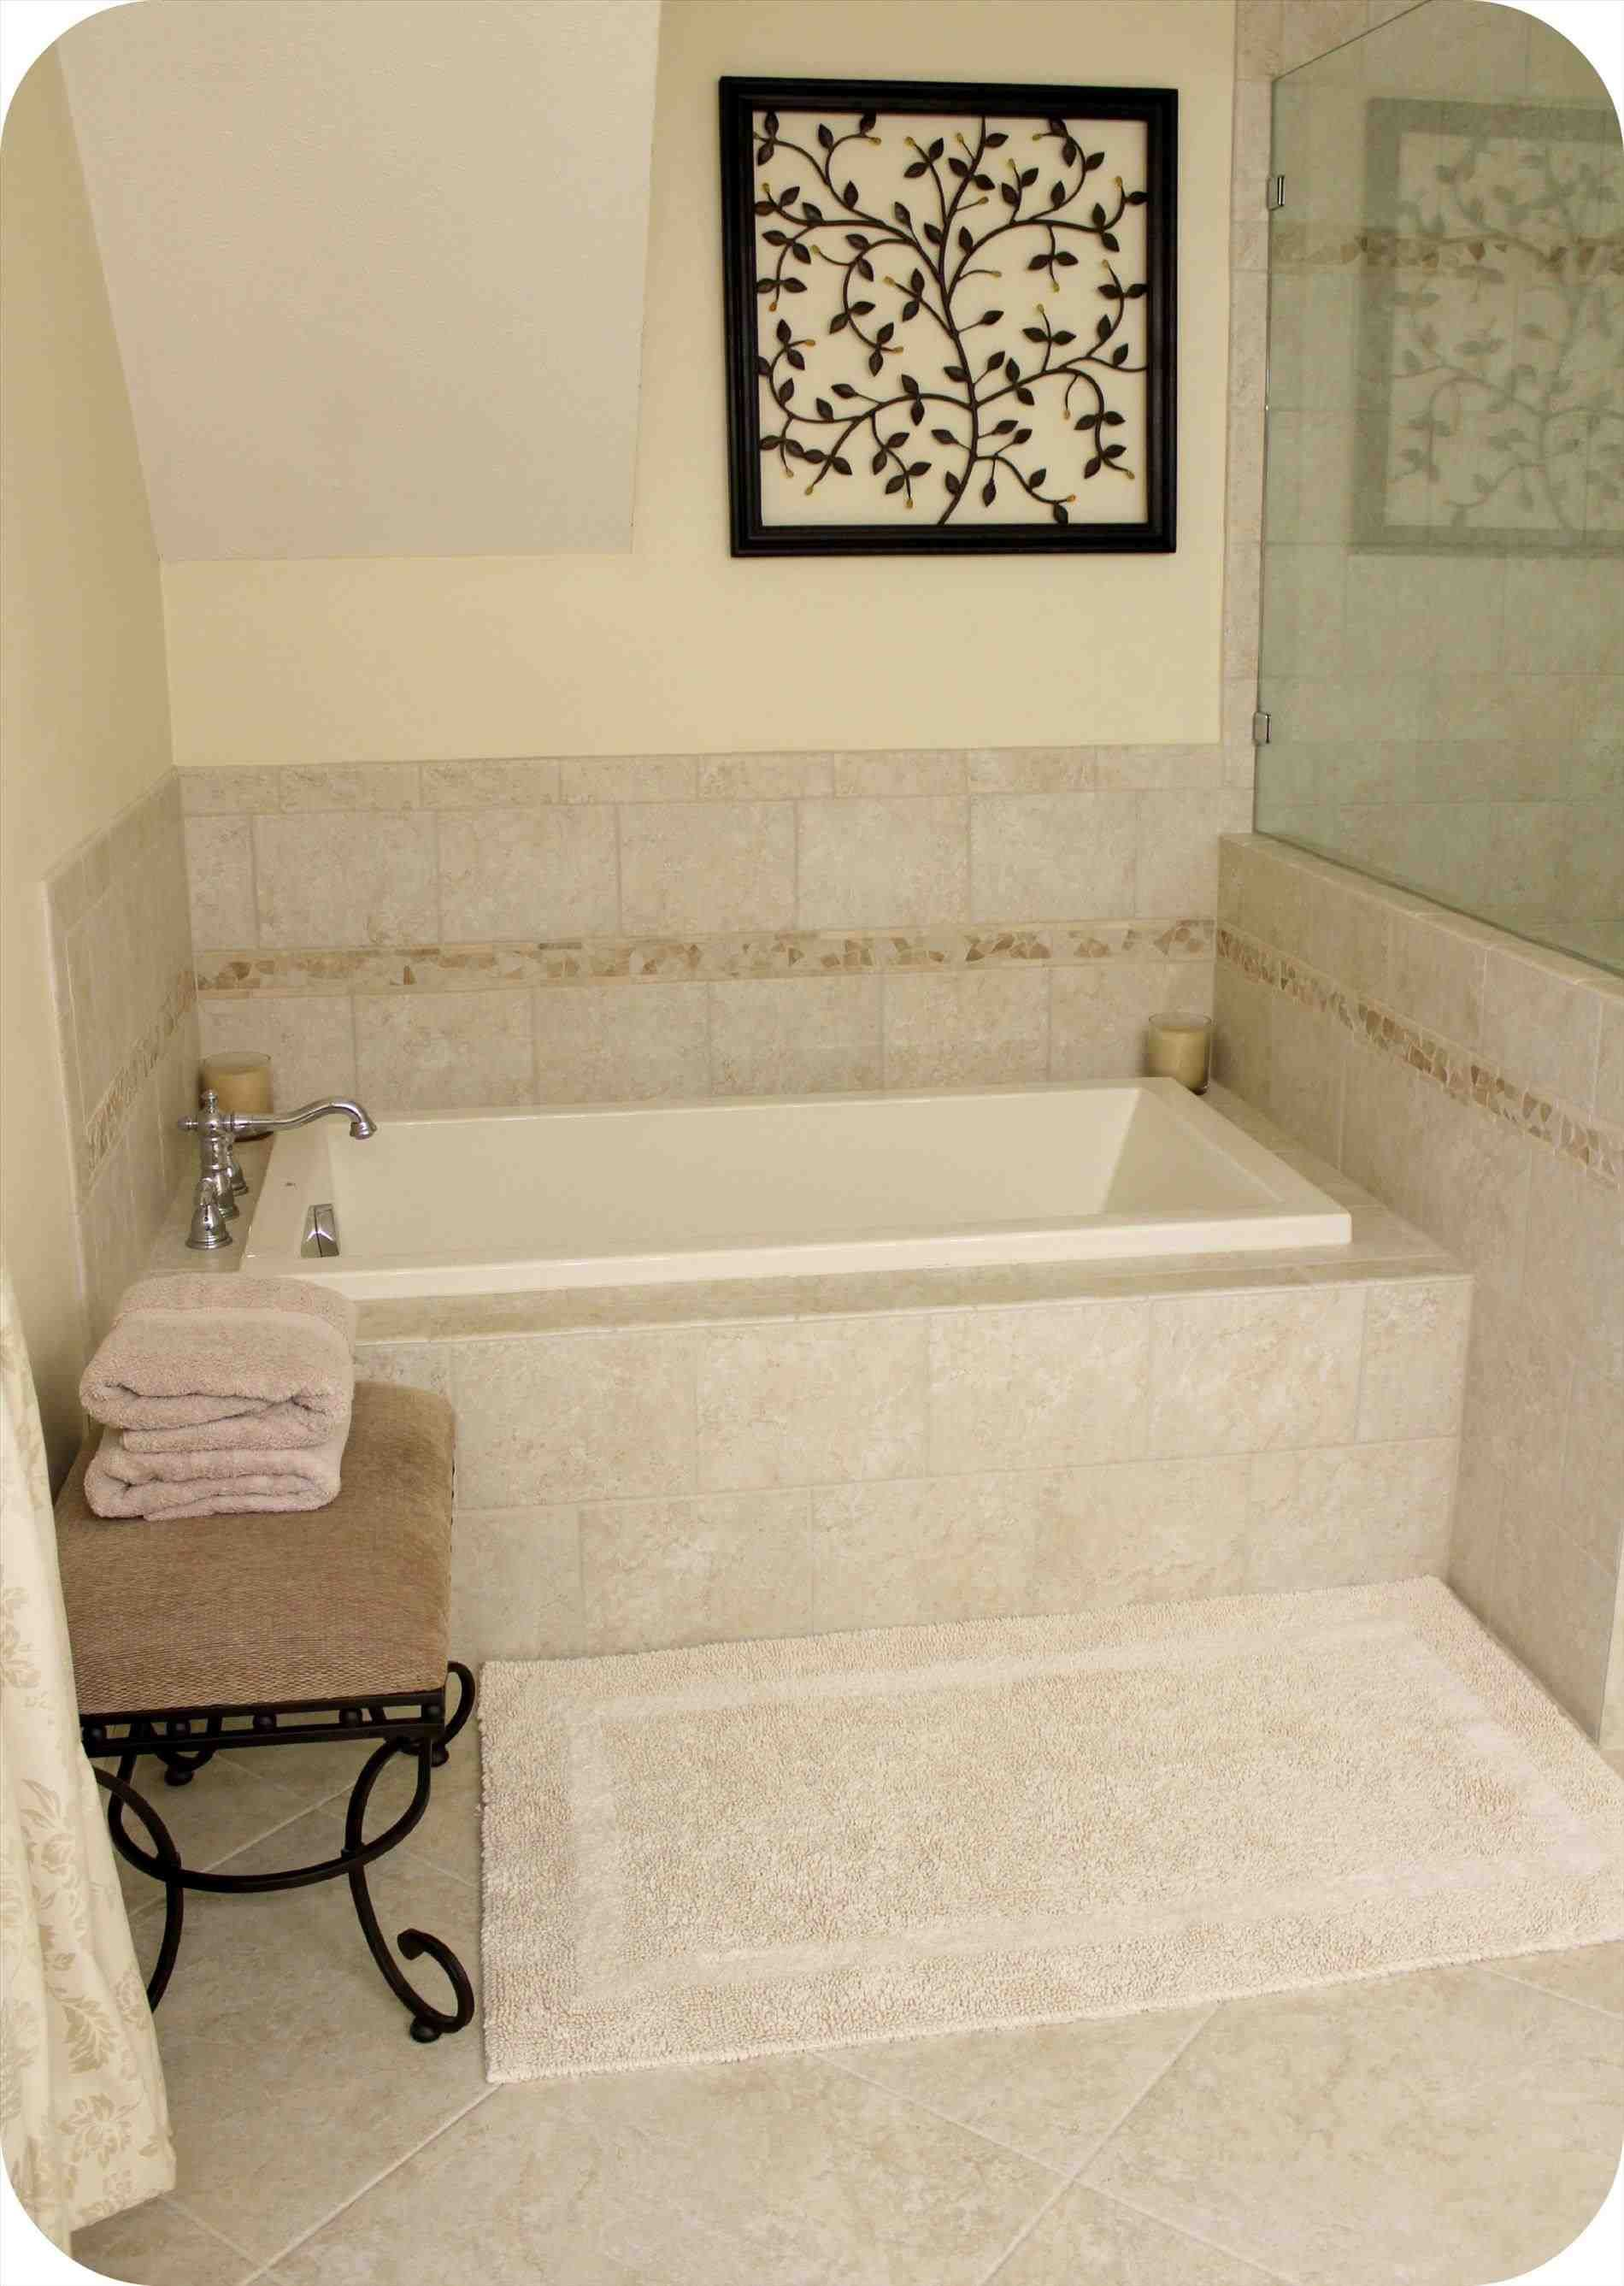 This small tub sizes - full size of japanese soaking tubs small ...